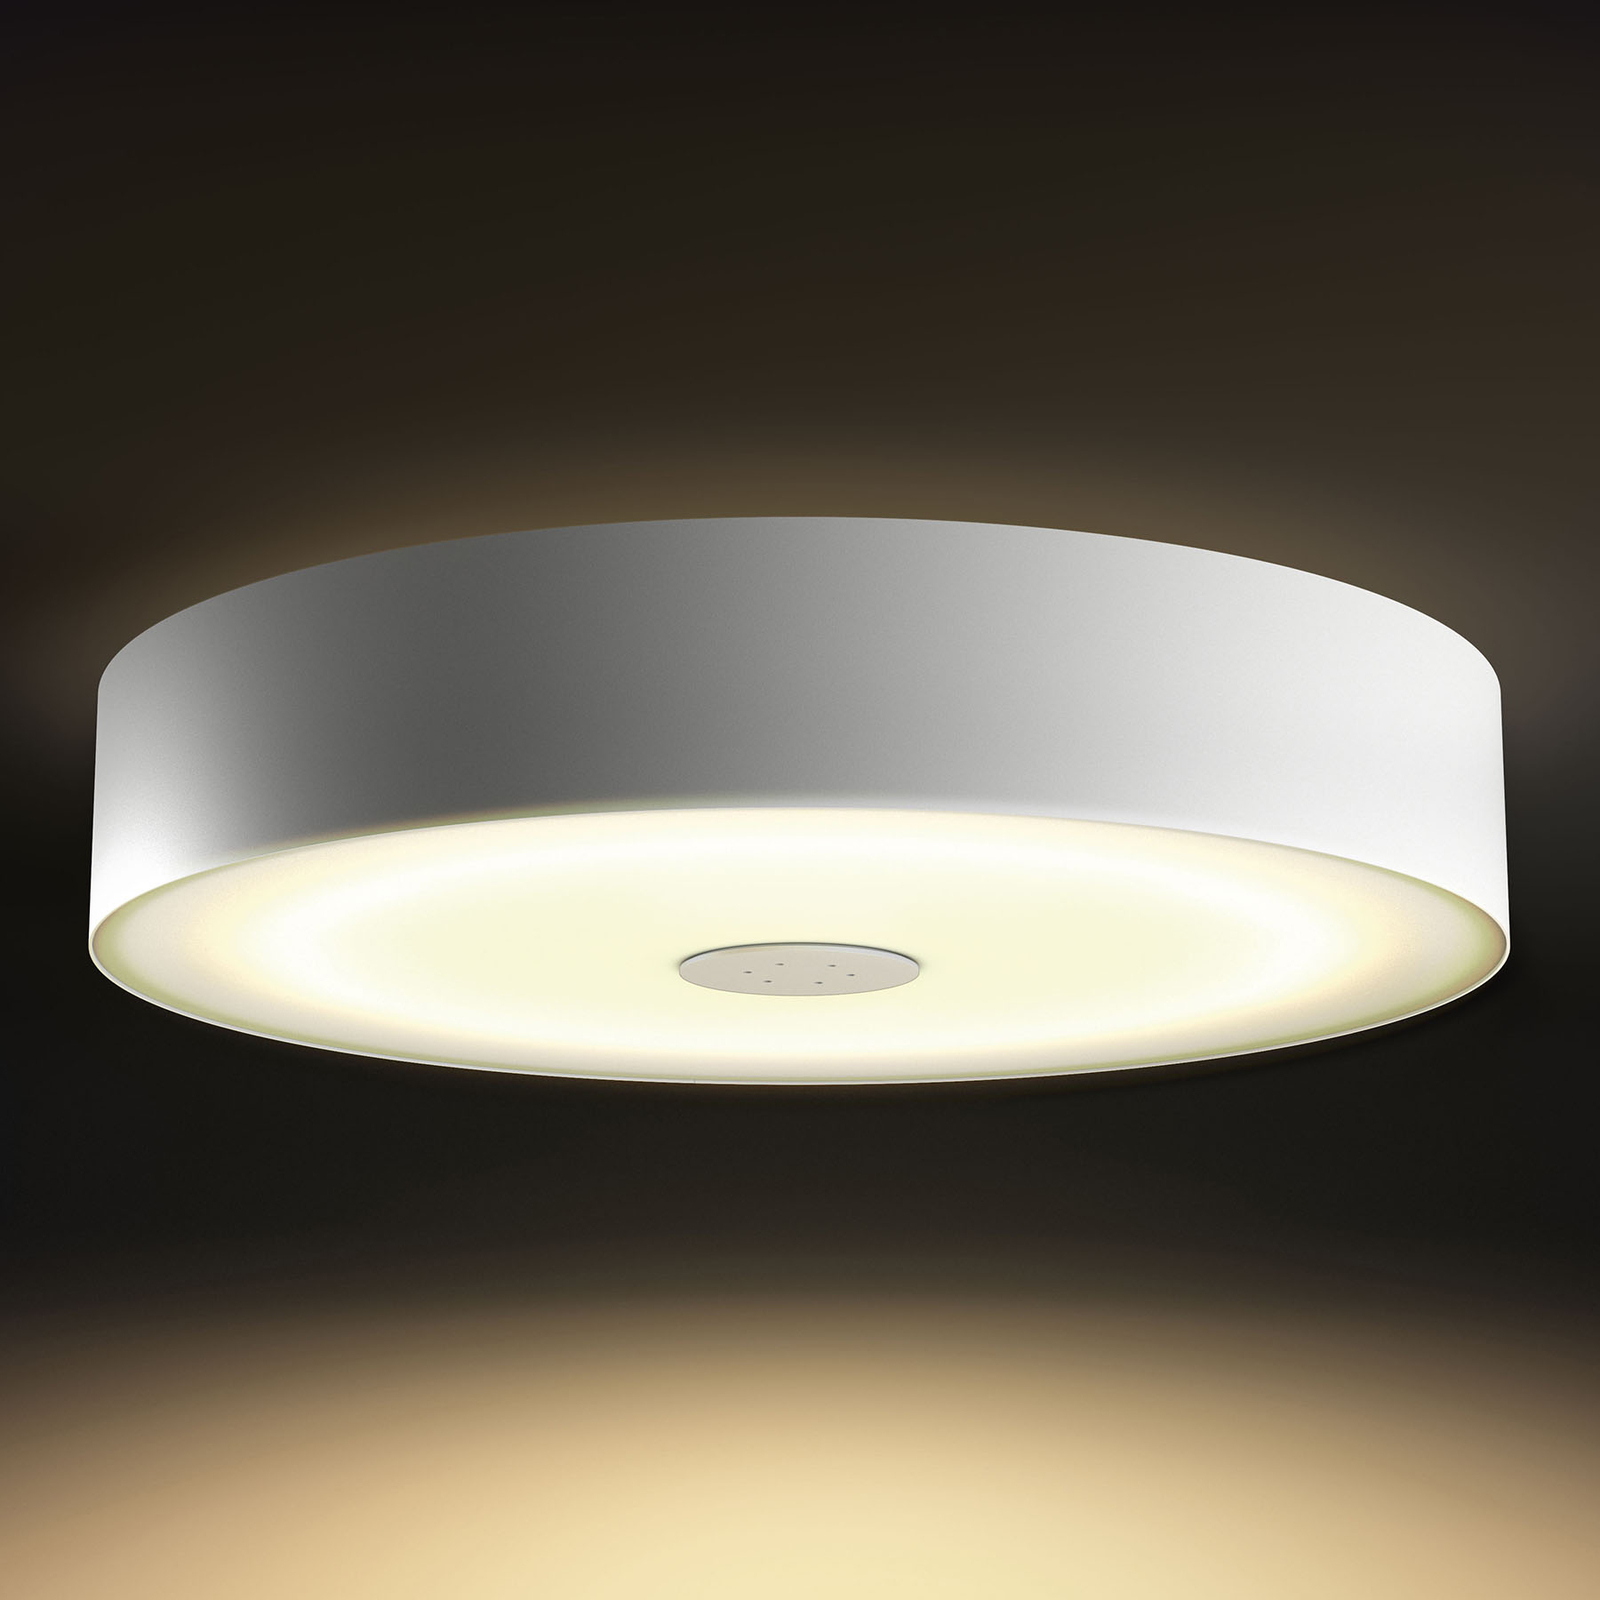 Philips Hue White Ambiance Fair plafondlamp wit